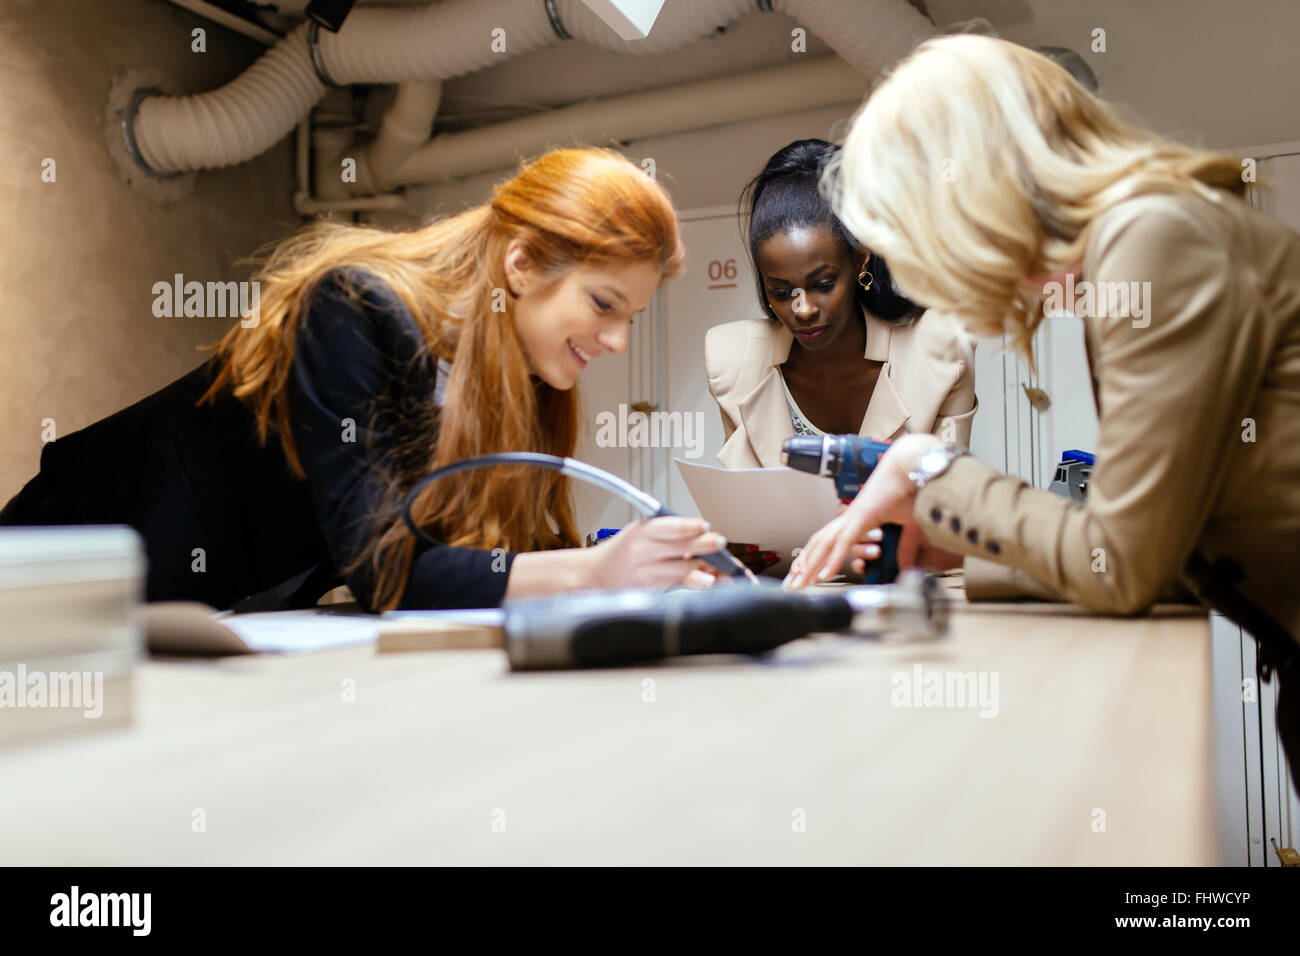 Group of designers working on a project as a team - Stock Image